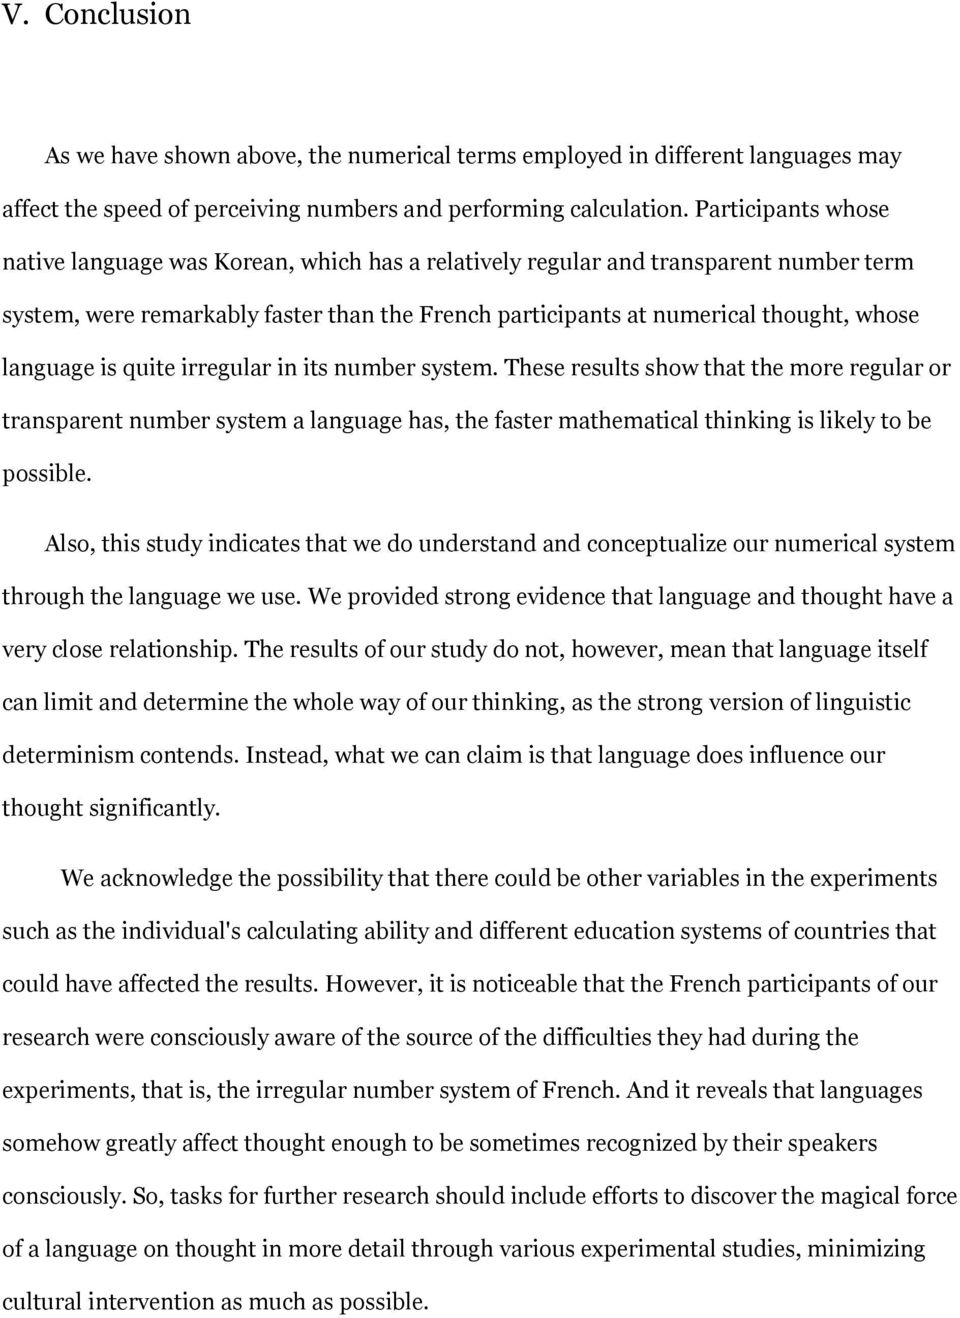 language is quite irregular in its number system. These results show that the more regular or transparent number system a language has, the faster mathematical thinking is likely to be possible.